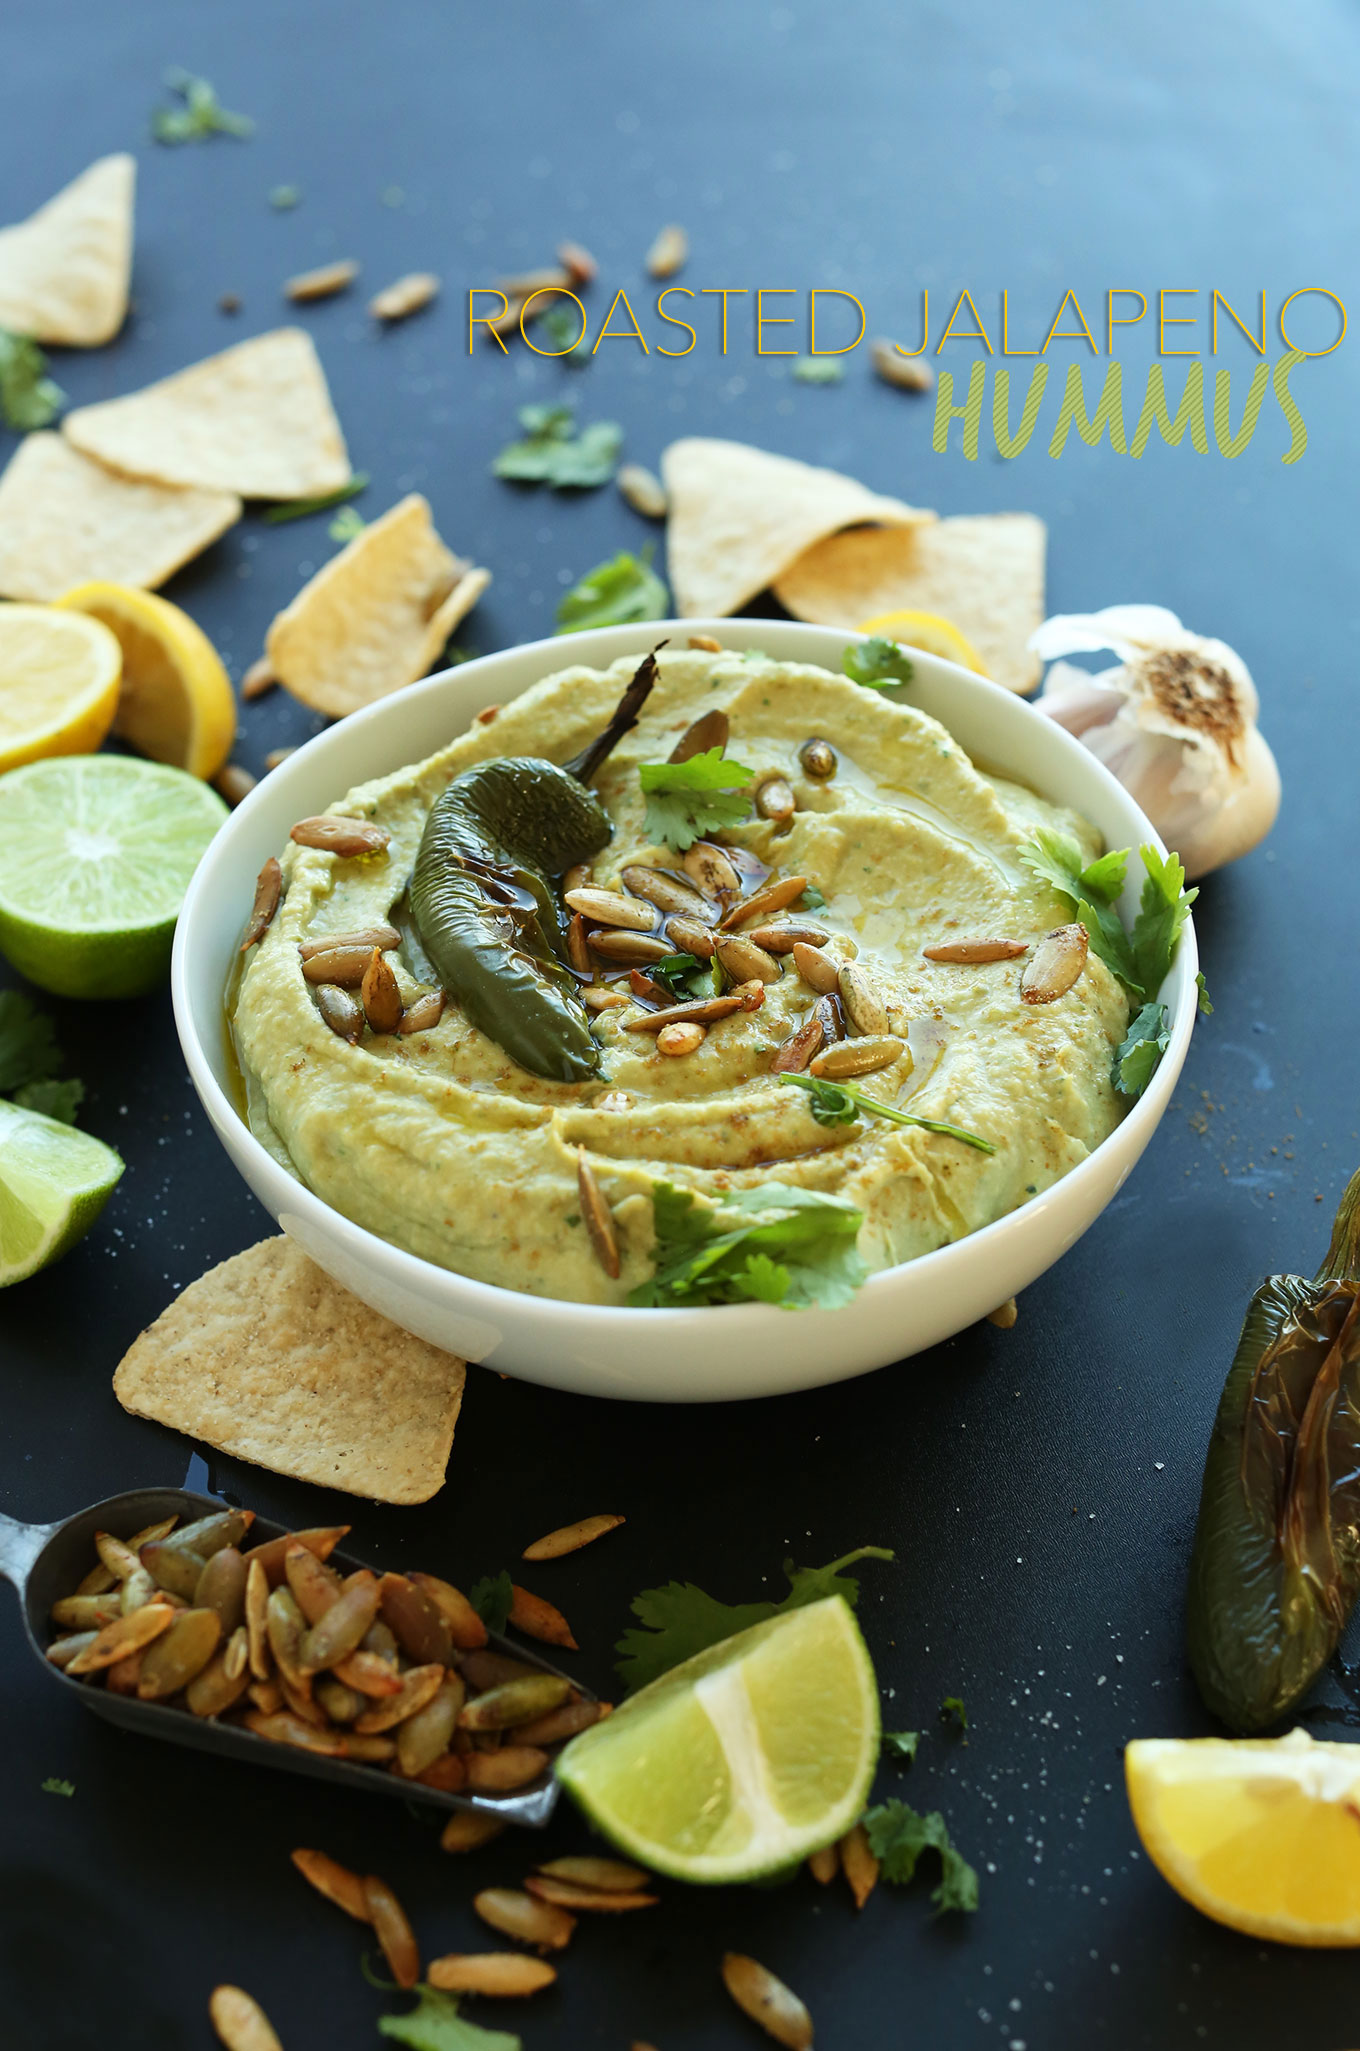 ROASTED JALAPENO HUMMUS! Quick, easy, subtly spiced and SO creamy and delicious #vegan #glutenfree #minimalistbaker